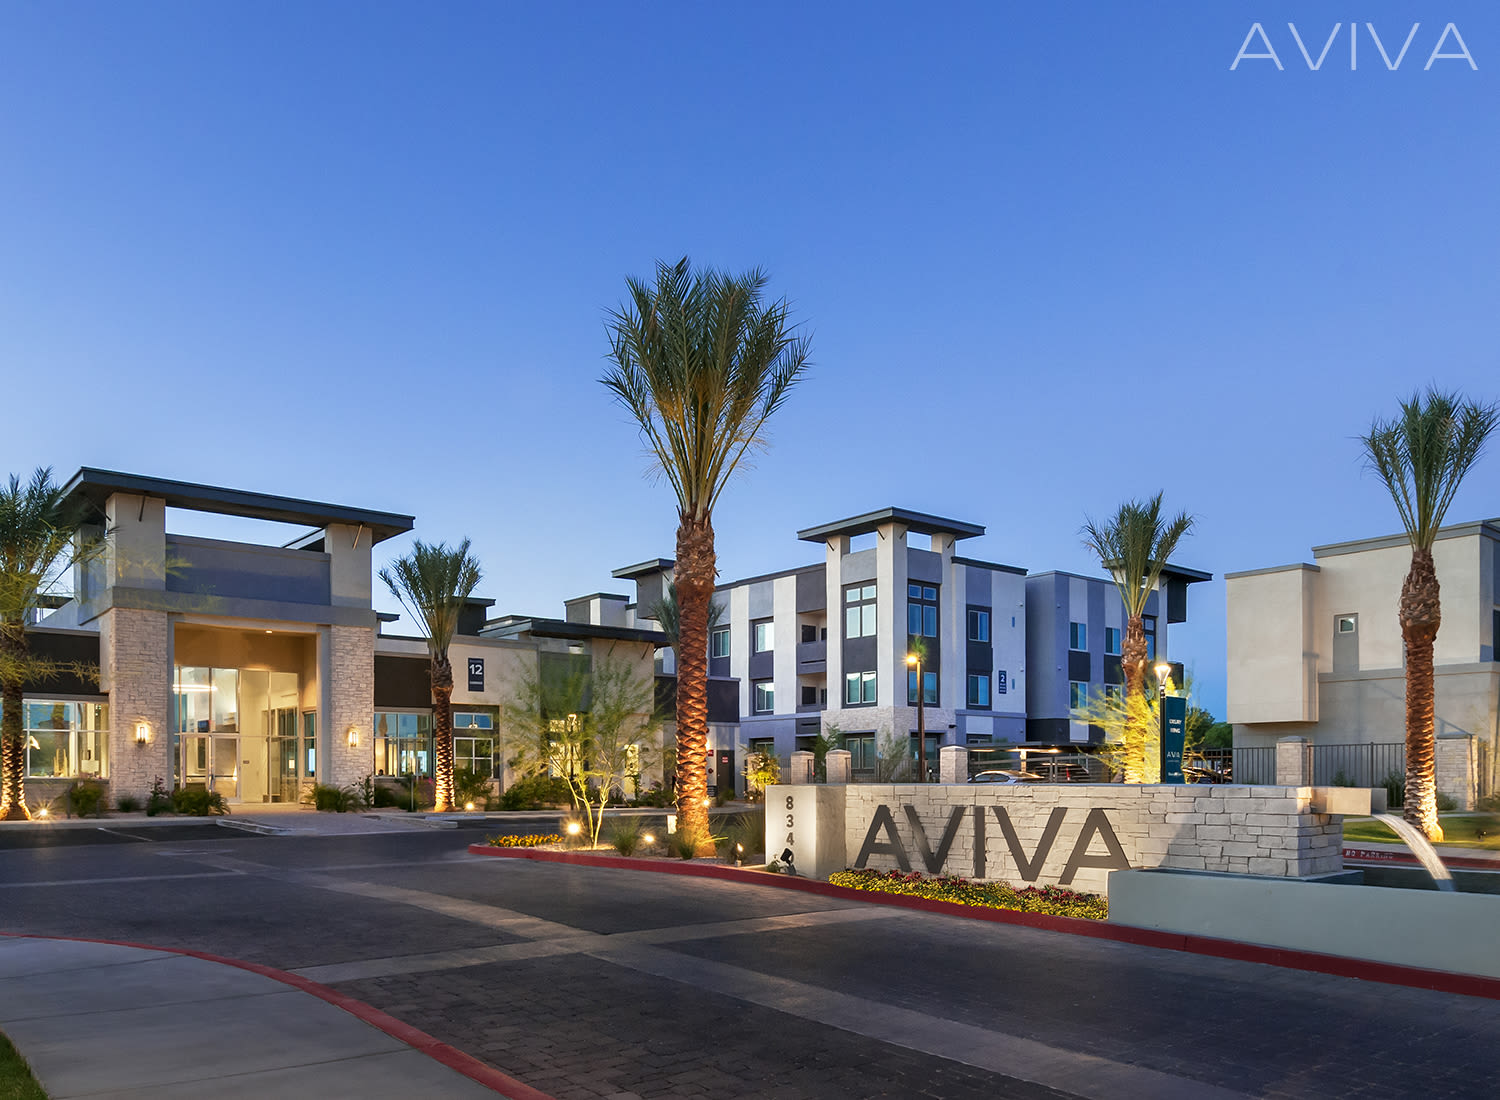 Aviva apartments in Mesa, Arizona